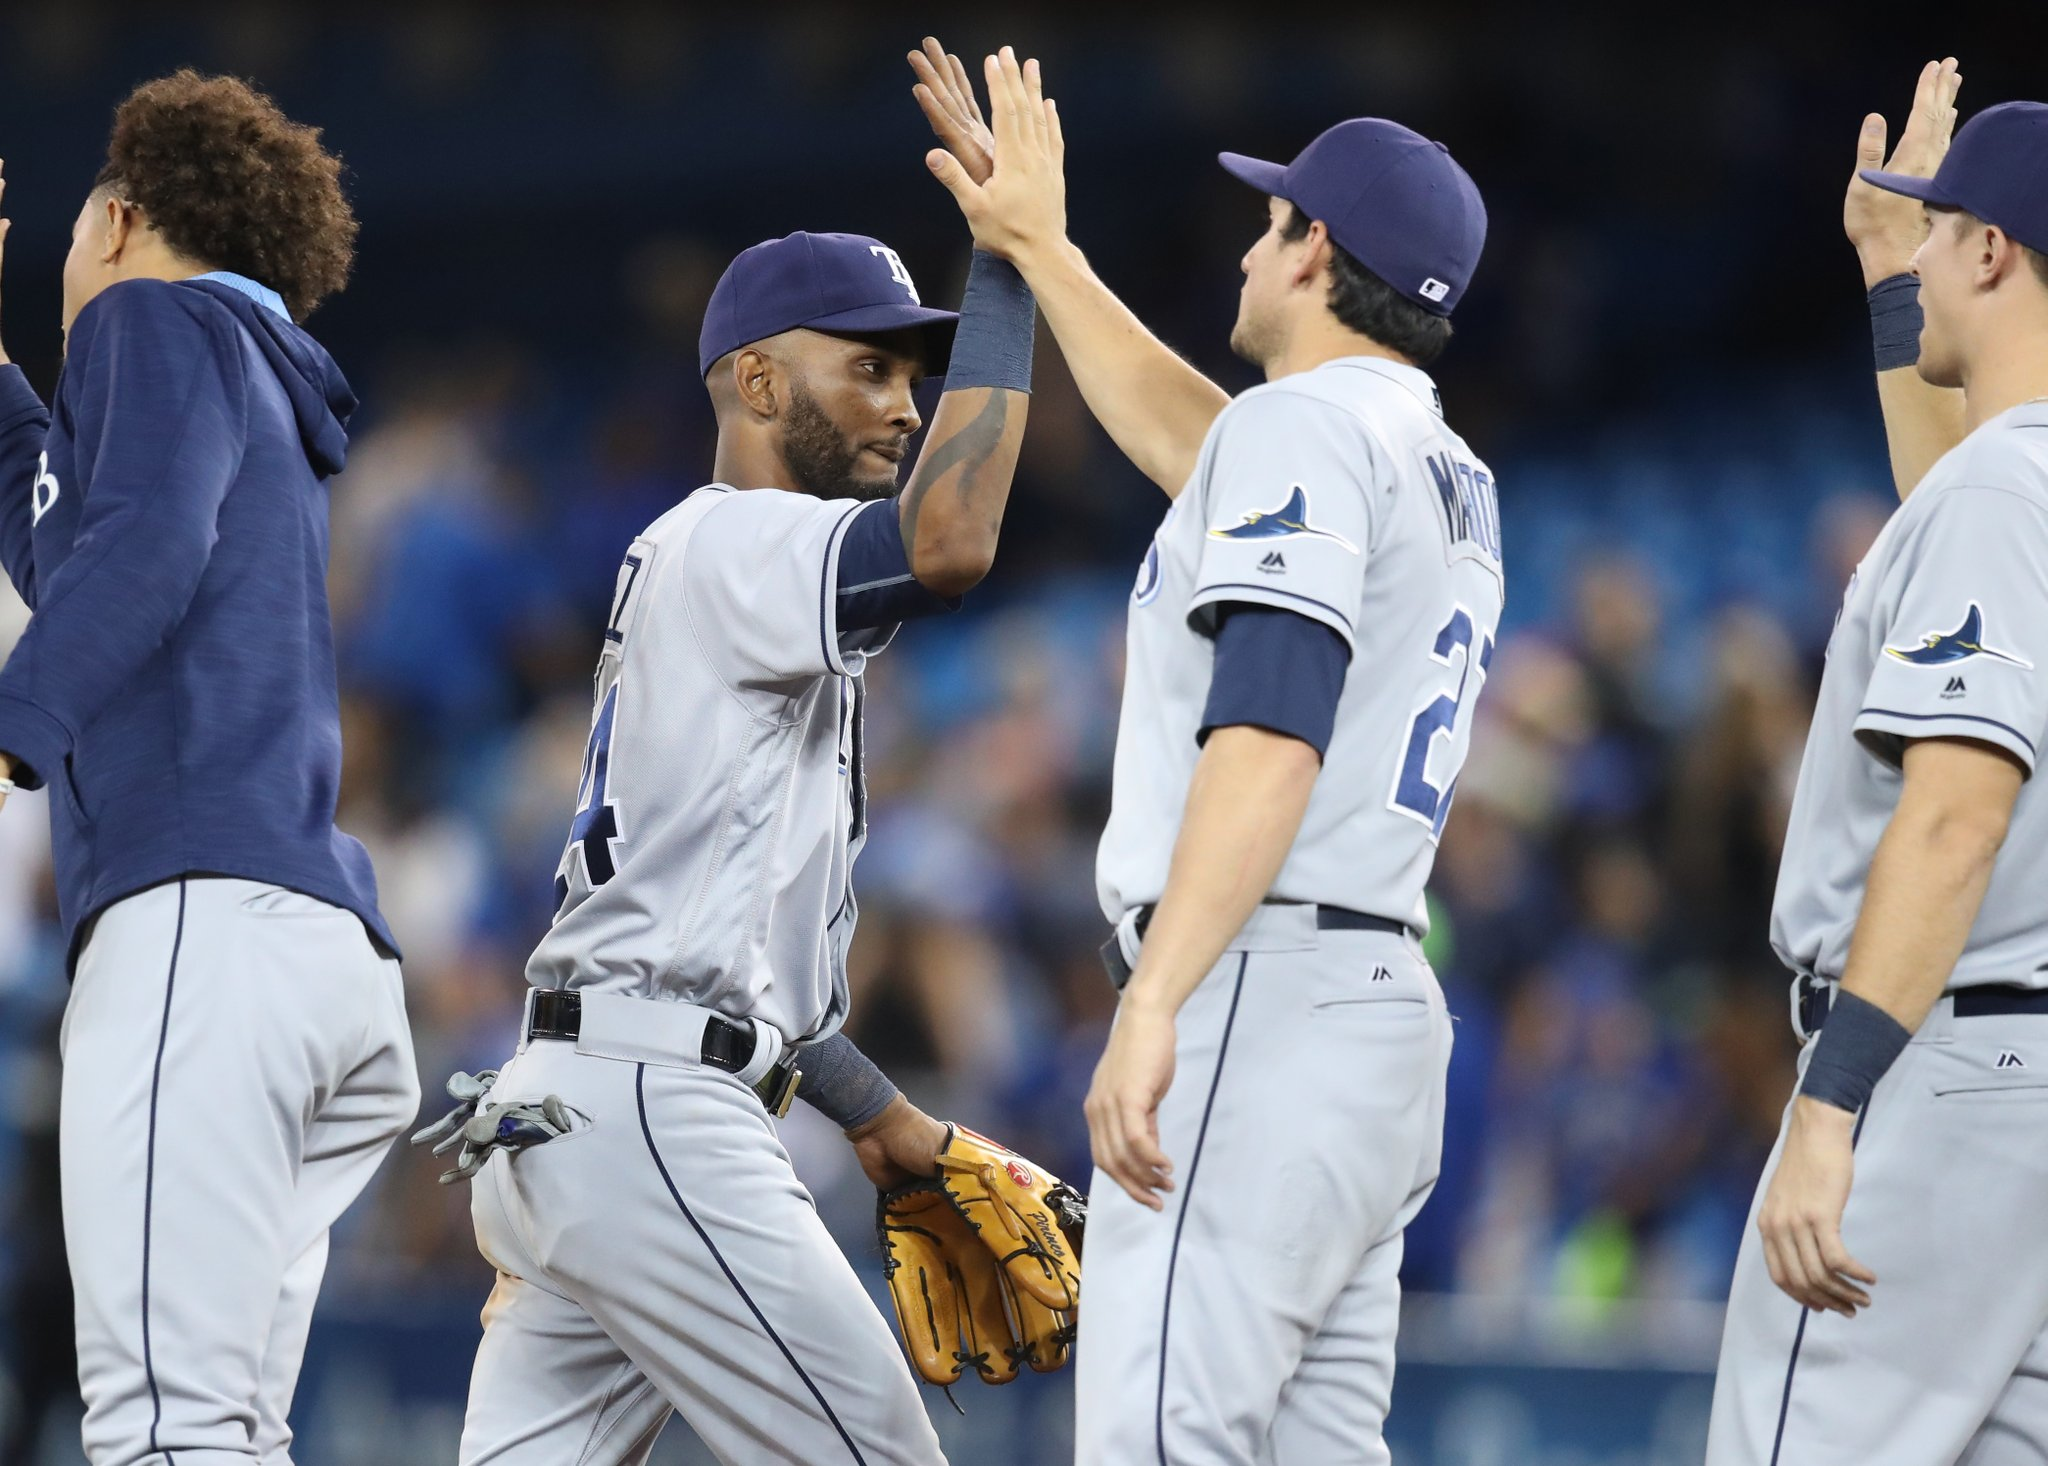 The Tampa Bay Rays plated 16 runs over the course of three games against the Toronto Blue Jays (an average of 5.33 runs per game). (Photo Credit: Tampa Bay Rays)